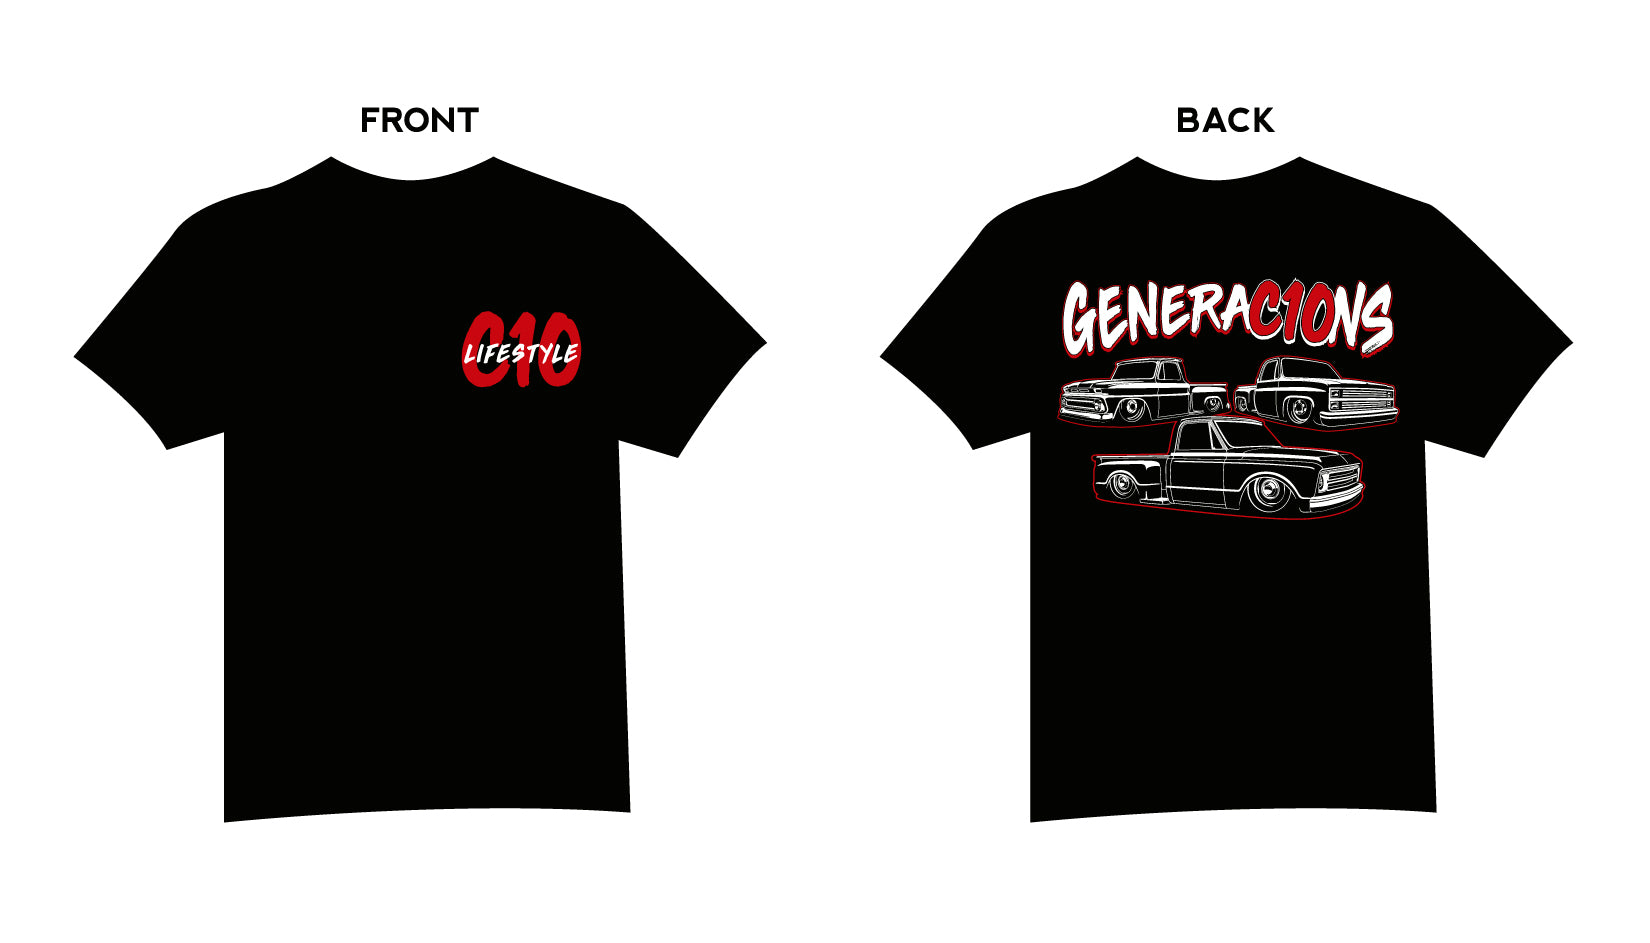 C10 Lifestyle Generations Stepsides shirt